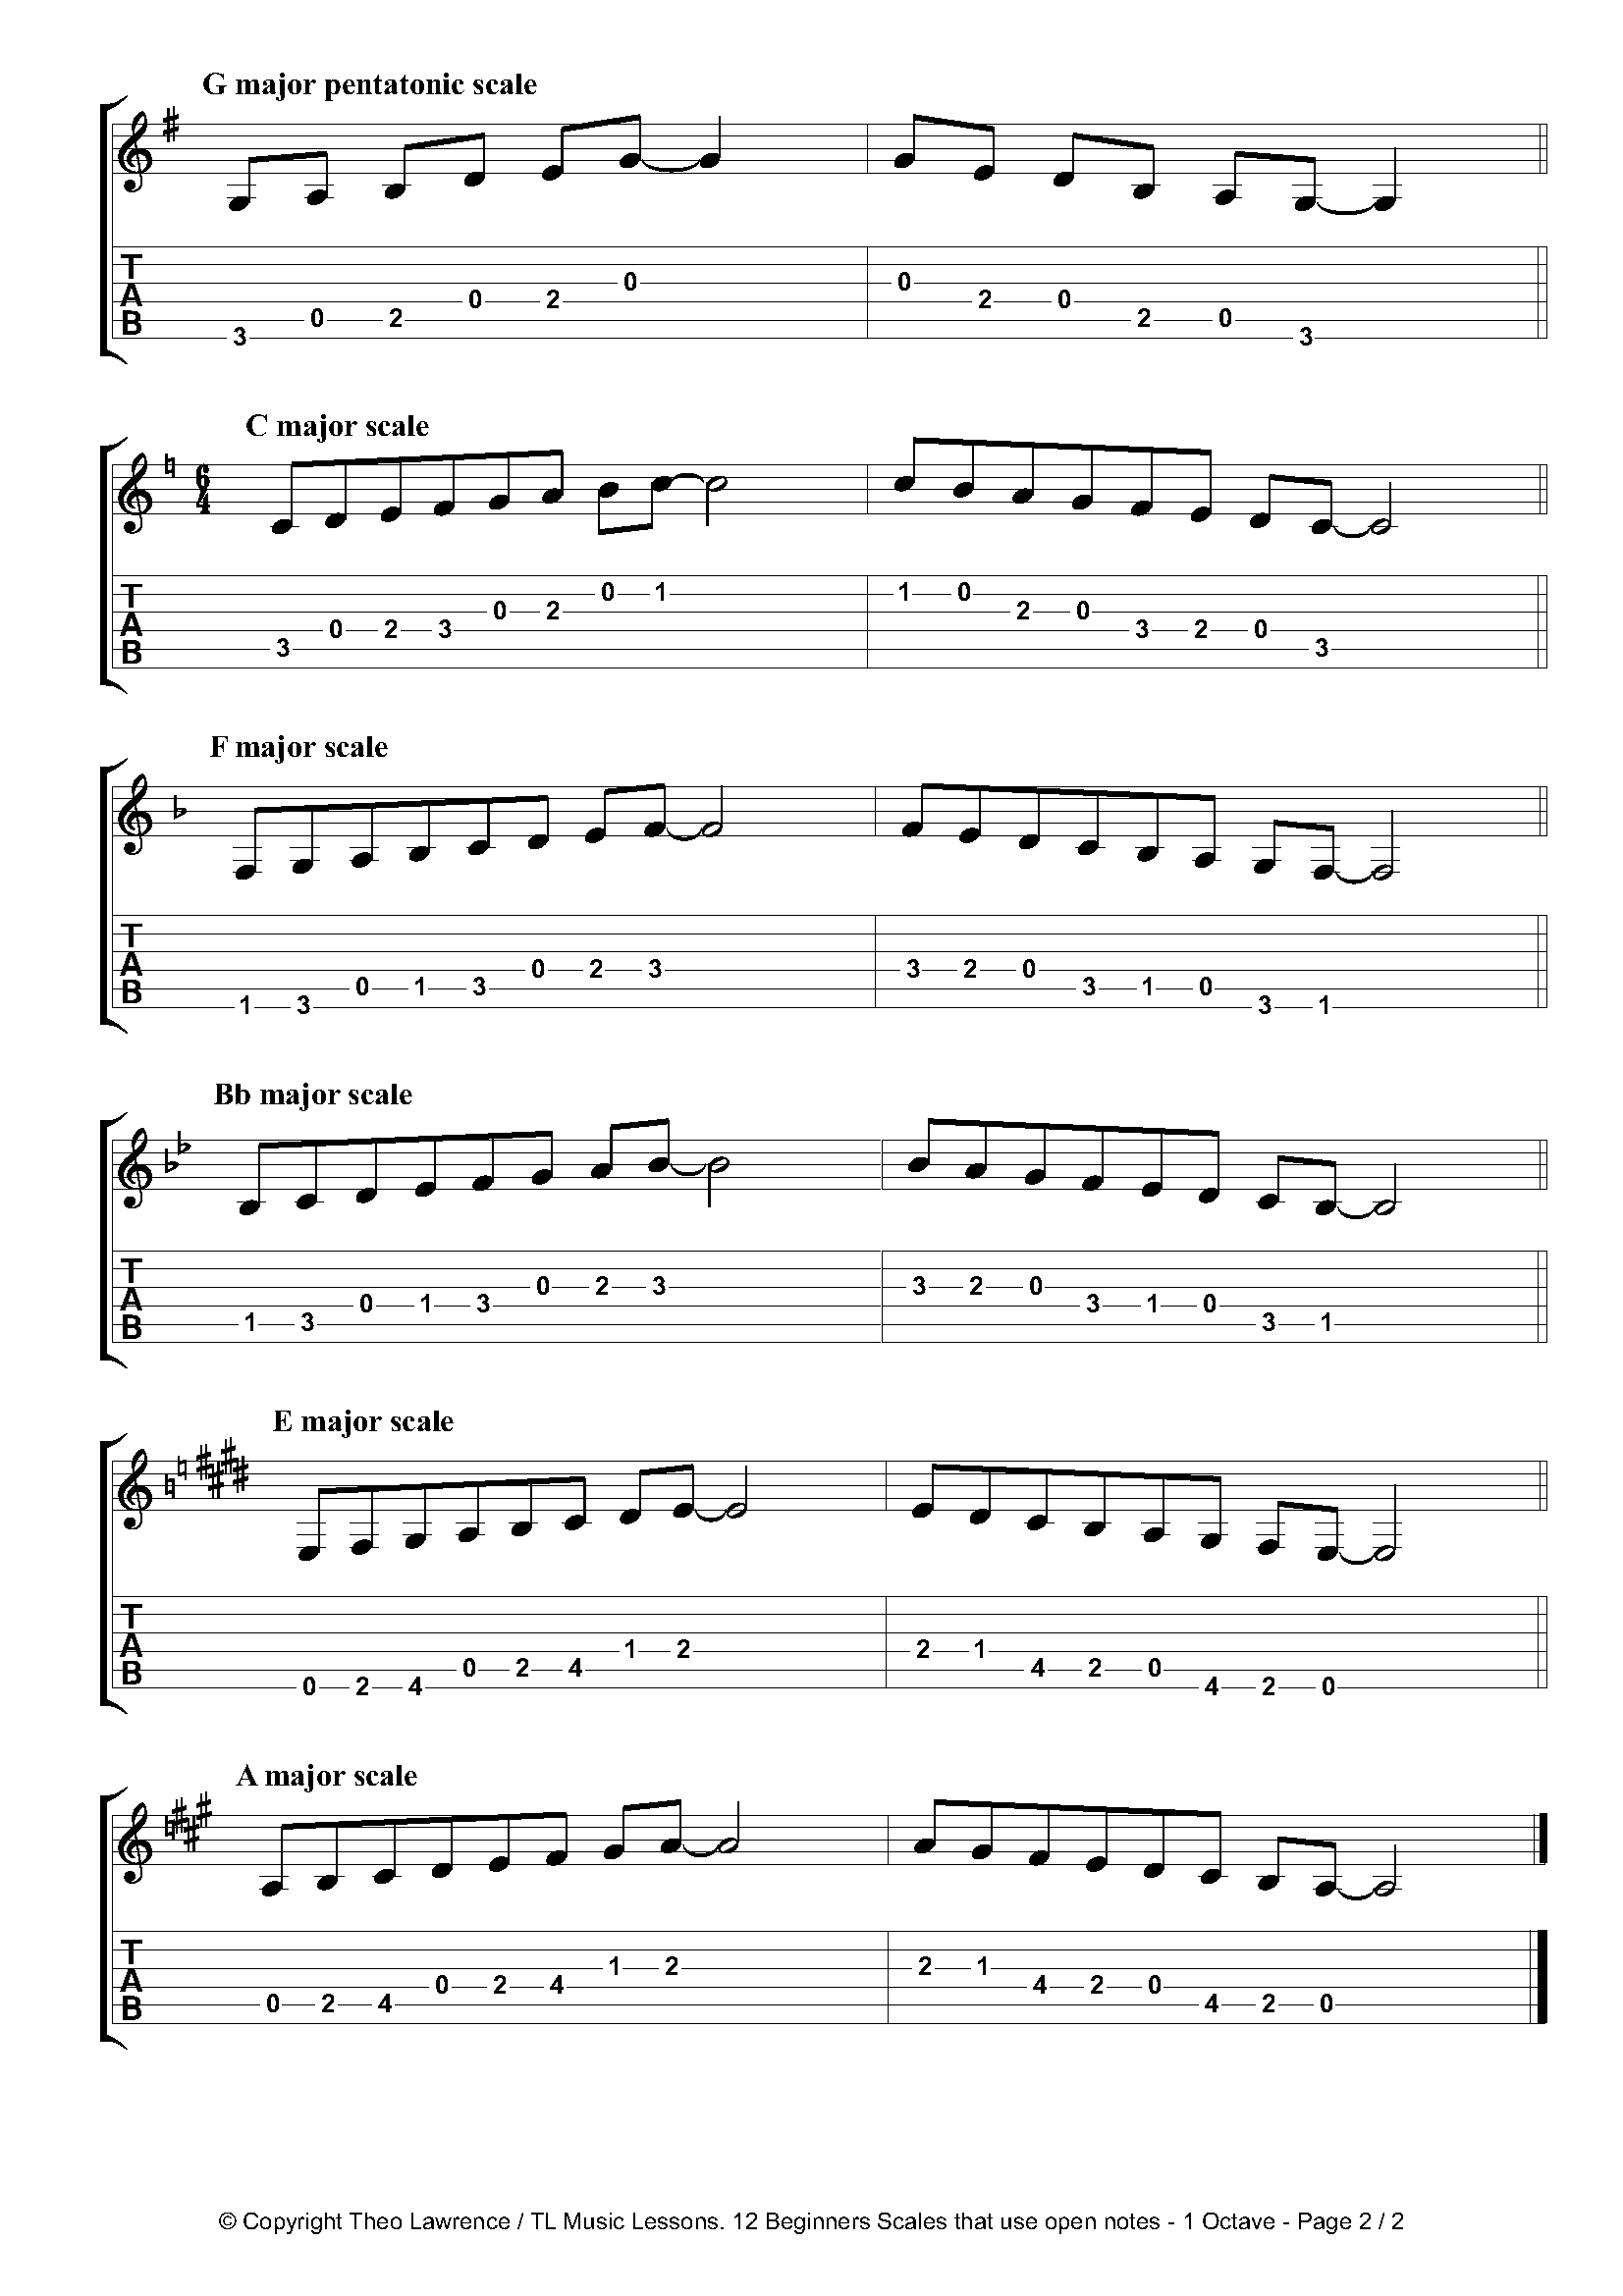 12 Beginners 1 Octave Open Scales